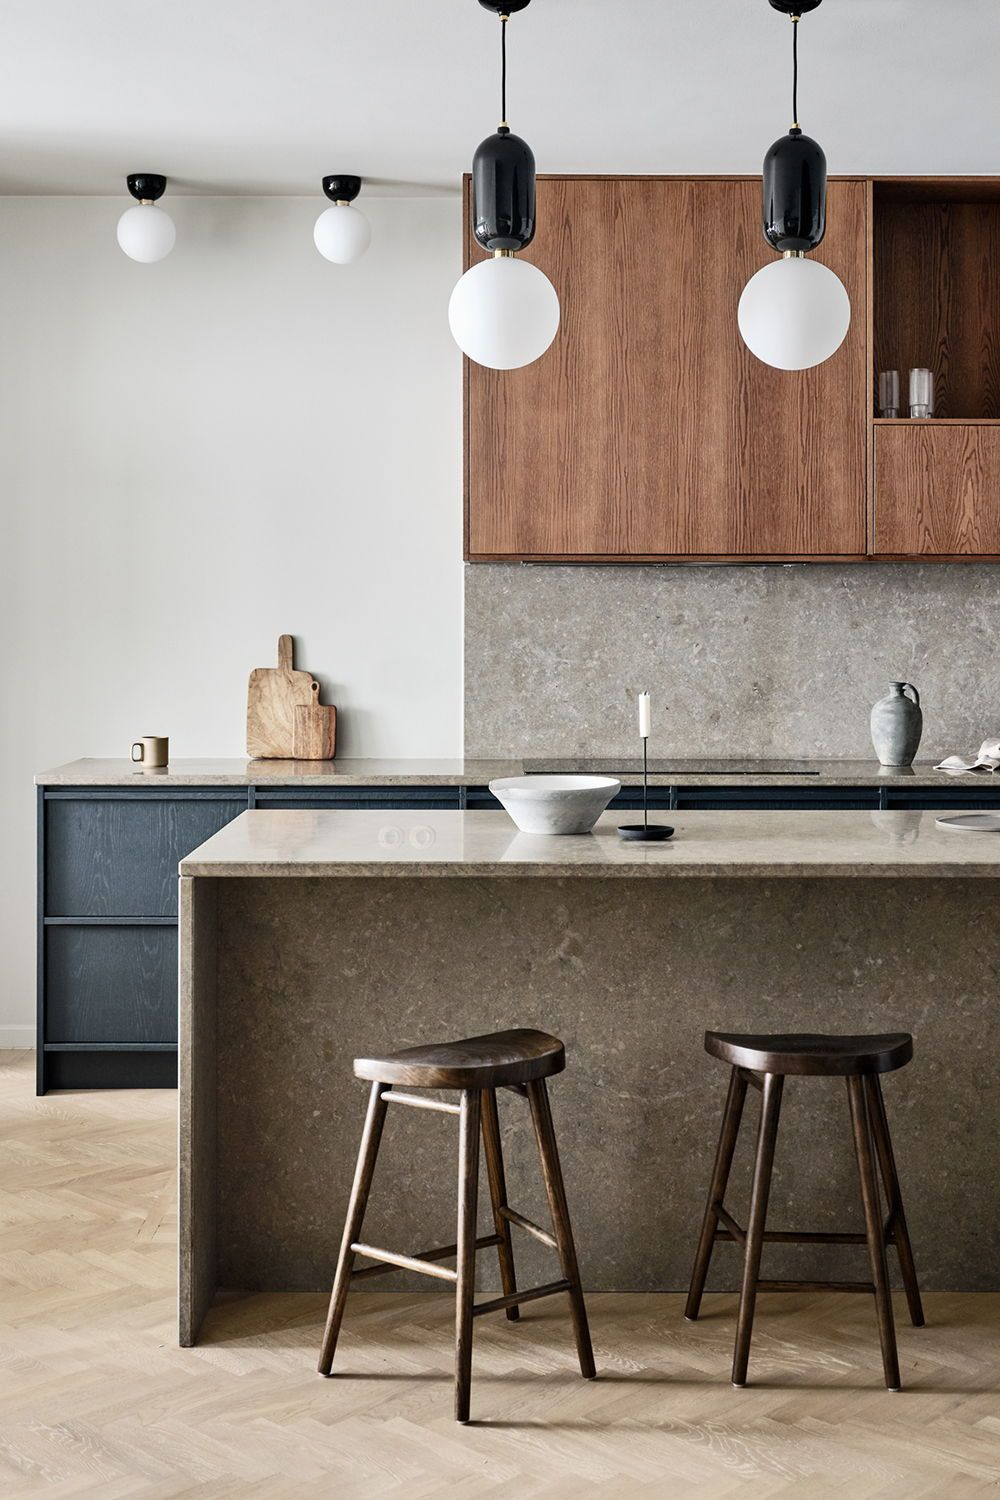 modern kitchens in scandinavian design - nordiska kök in